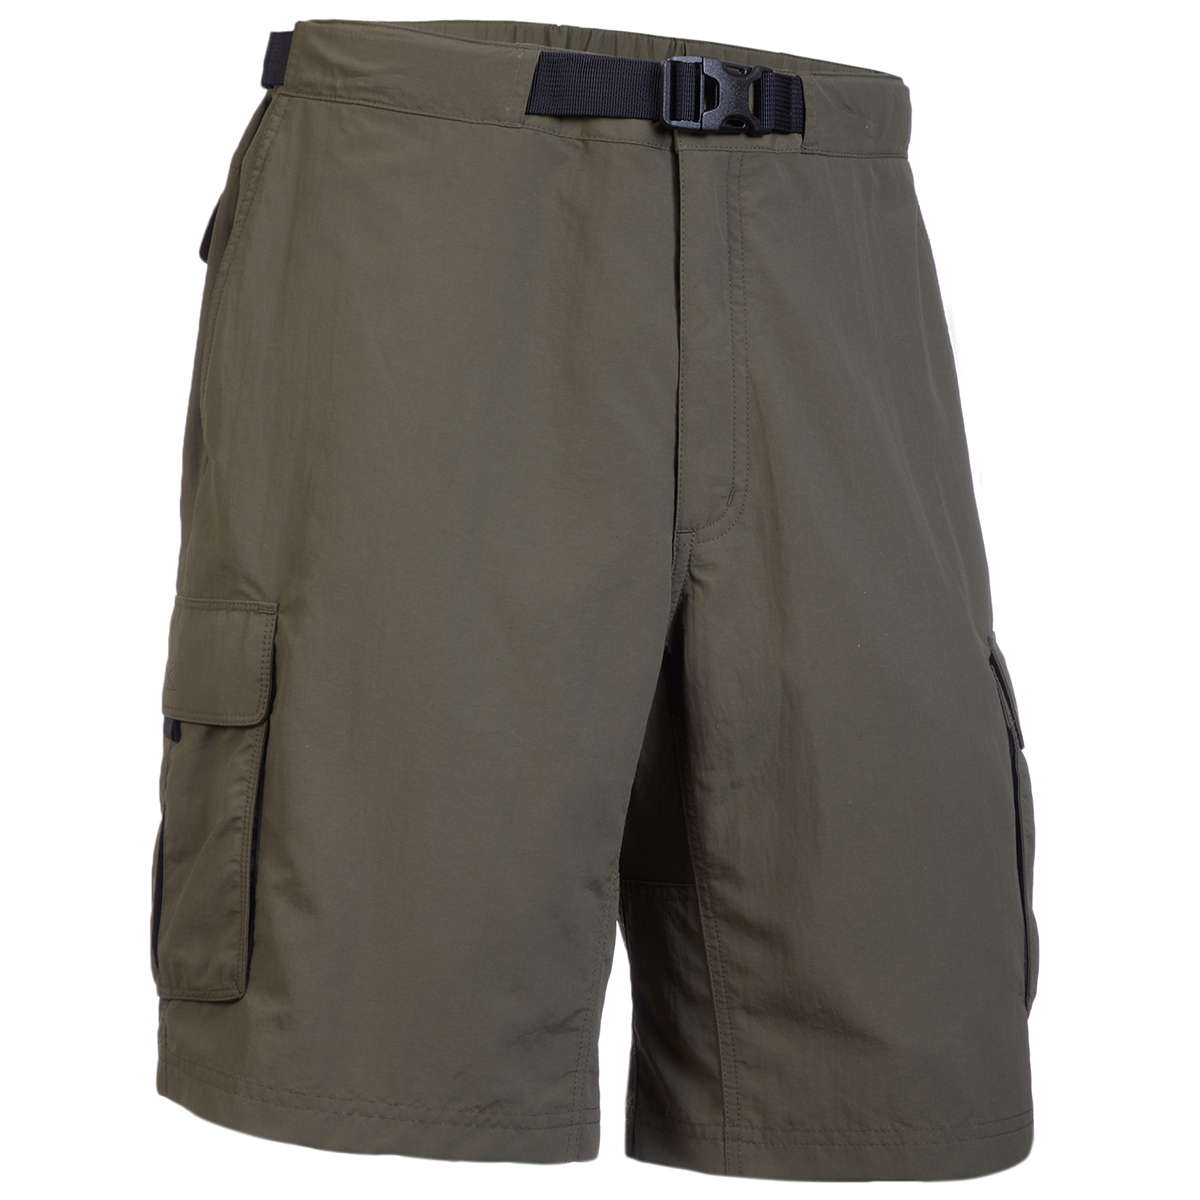 Ems Men's Camp Cargo Shorts - Green, 40